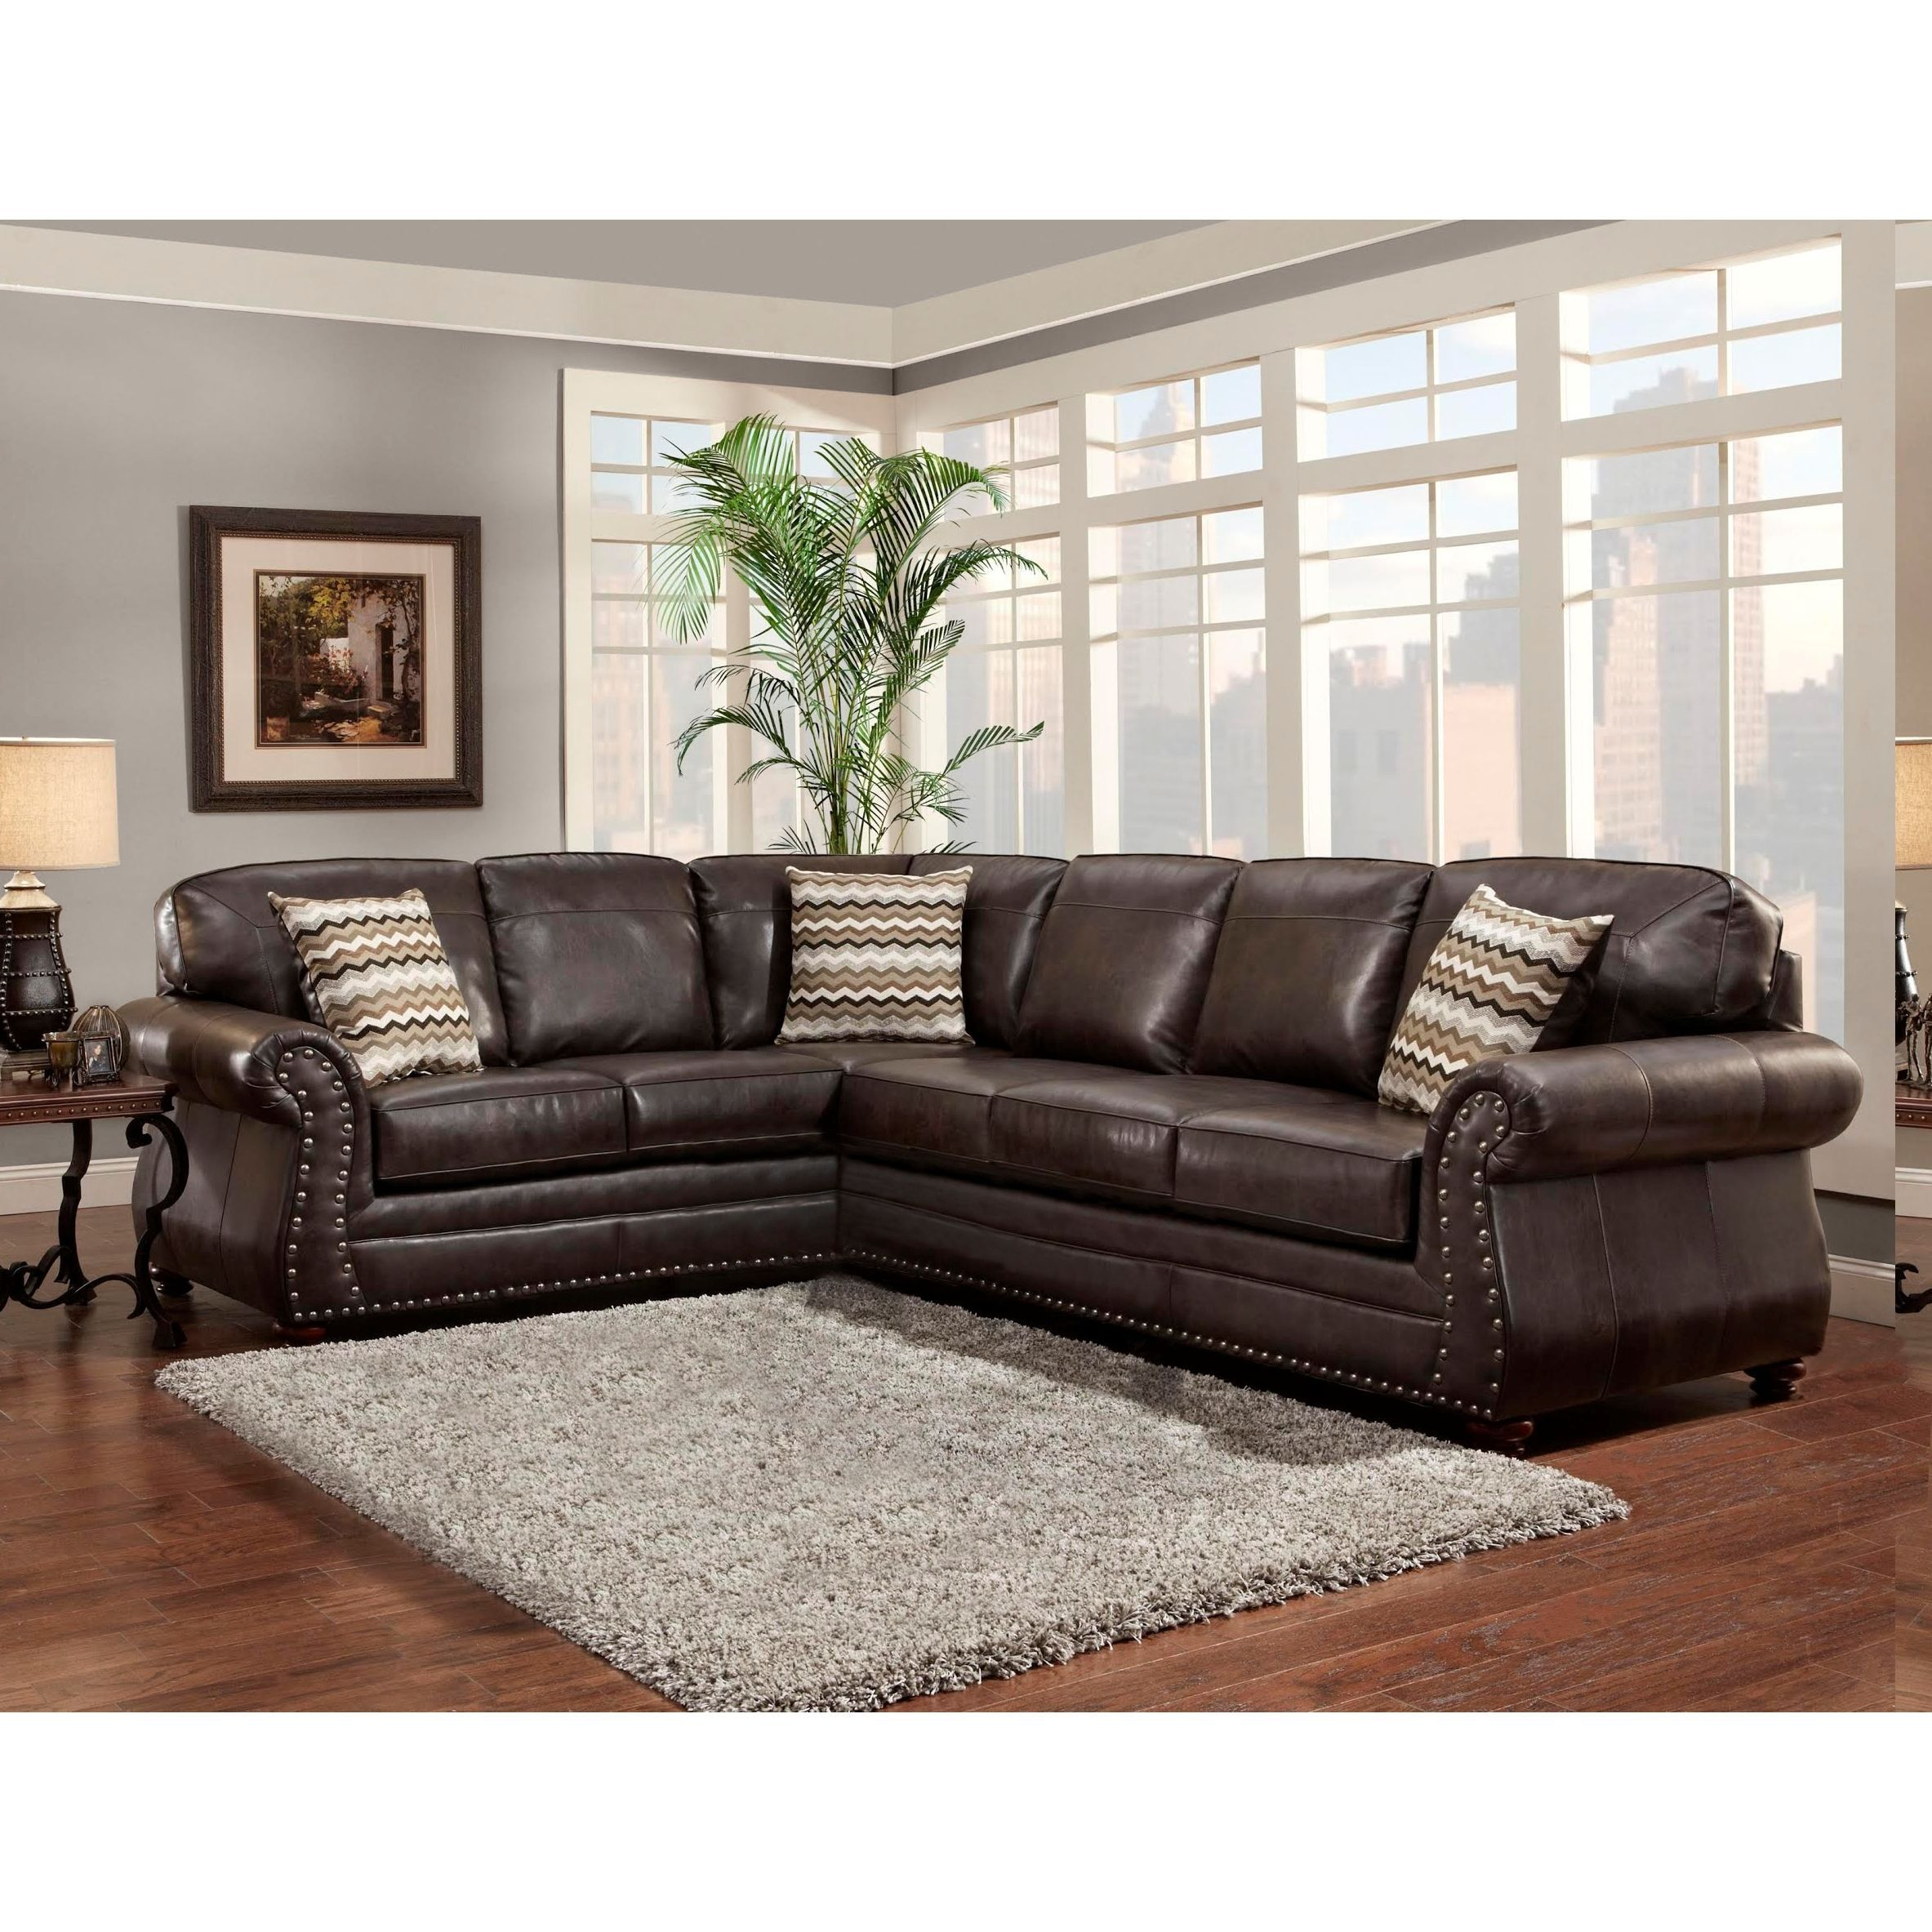 Sofa Trendz Bindy Saddle Faux Leather Sectional Bindy Sectional